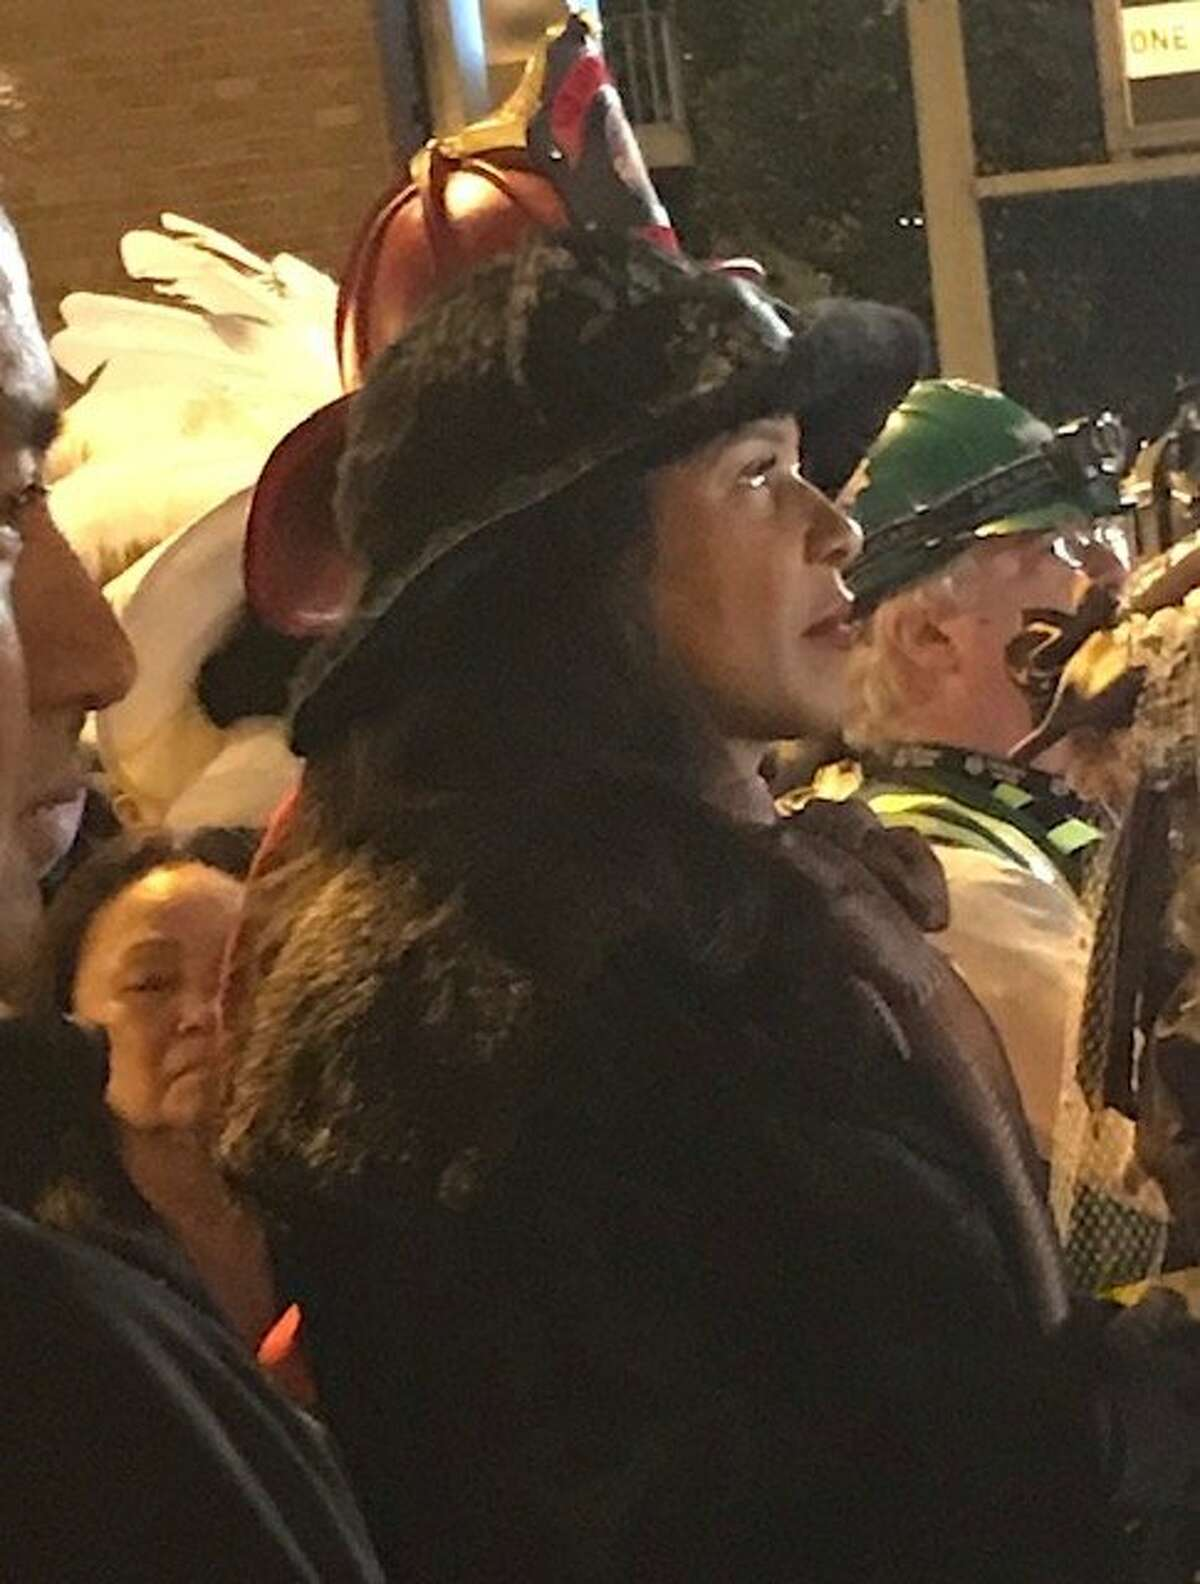 London Breed in crowd at Earthquake Commemoration festivities